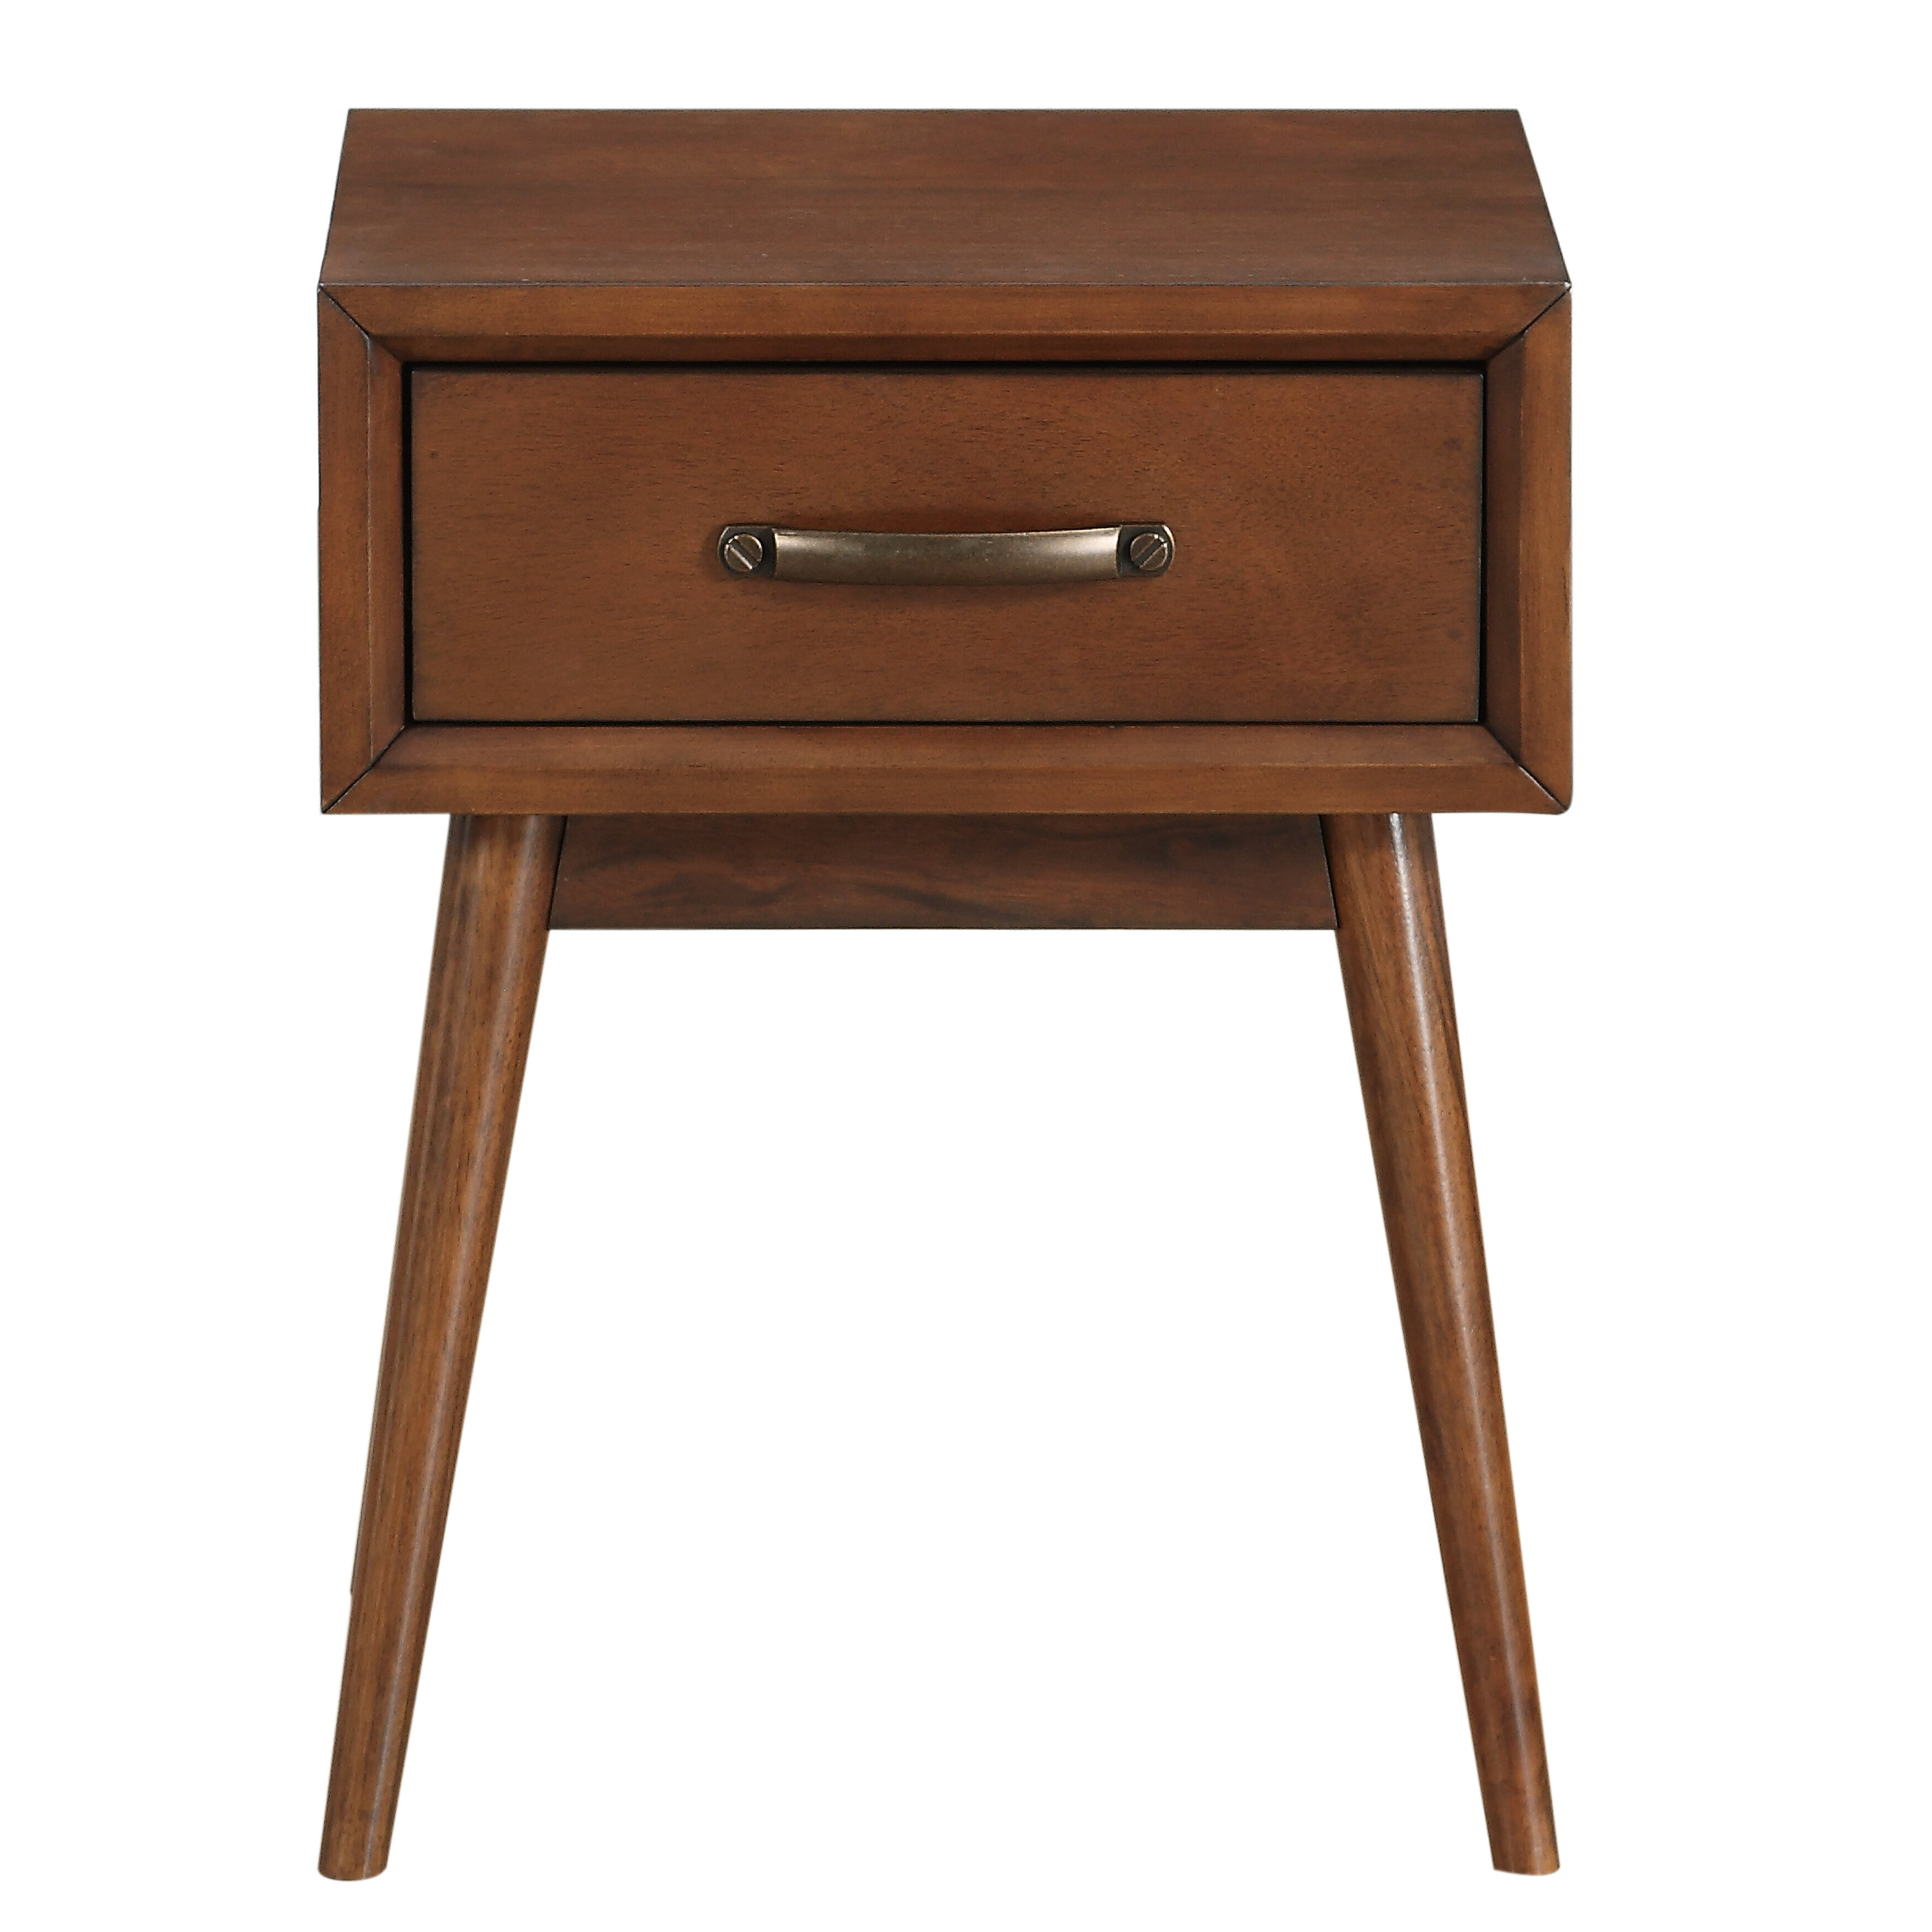 b993d8b83a12 George Oliver Ripton Mid-Century Modern End Table   Reviews